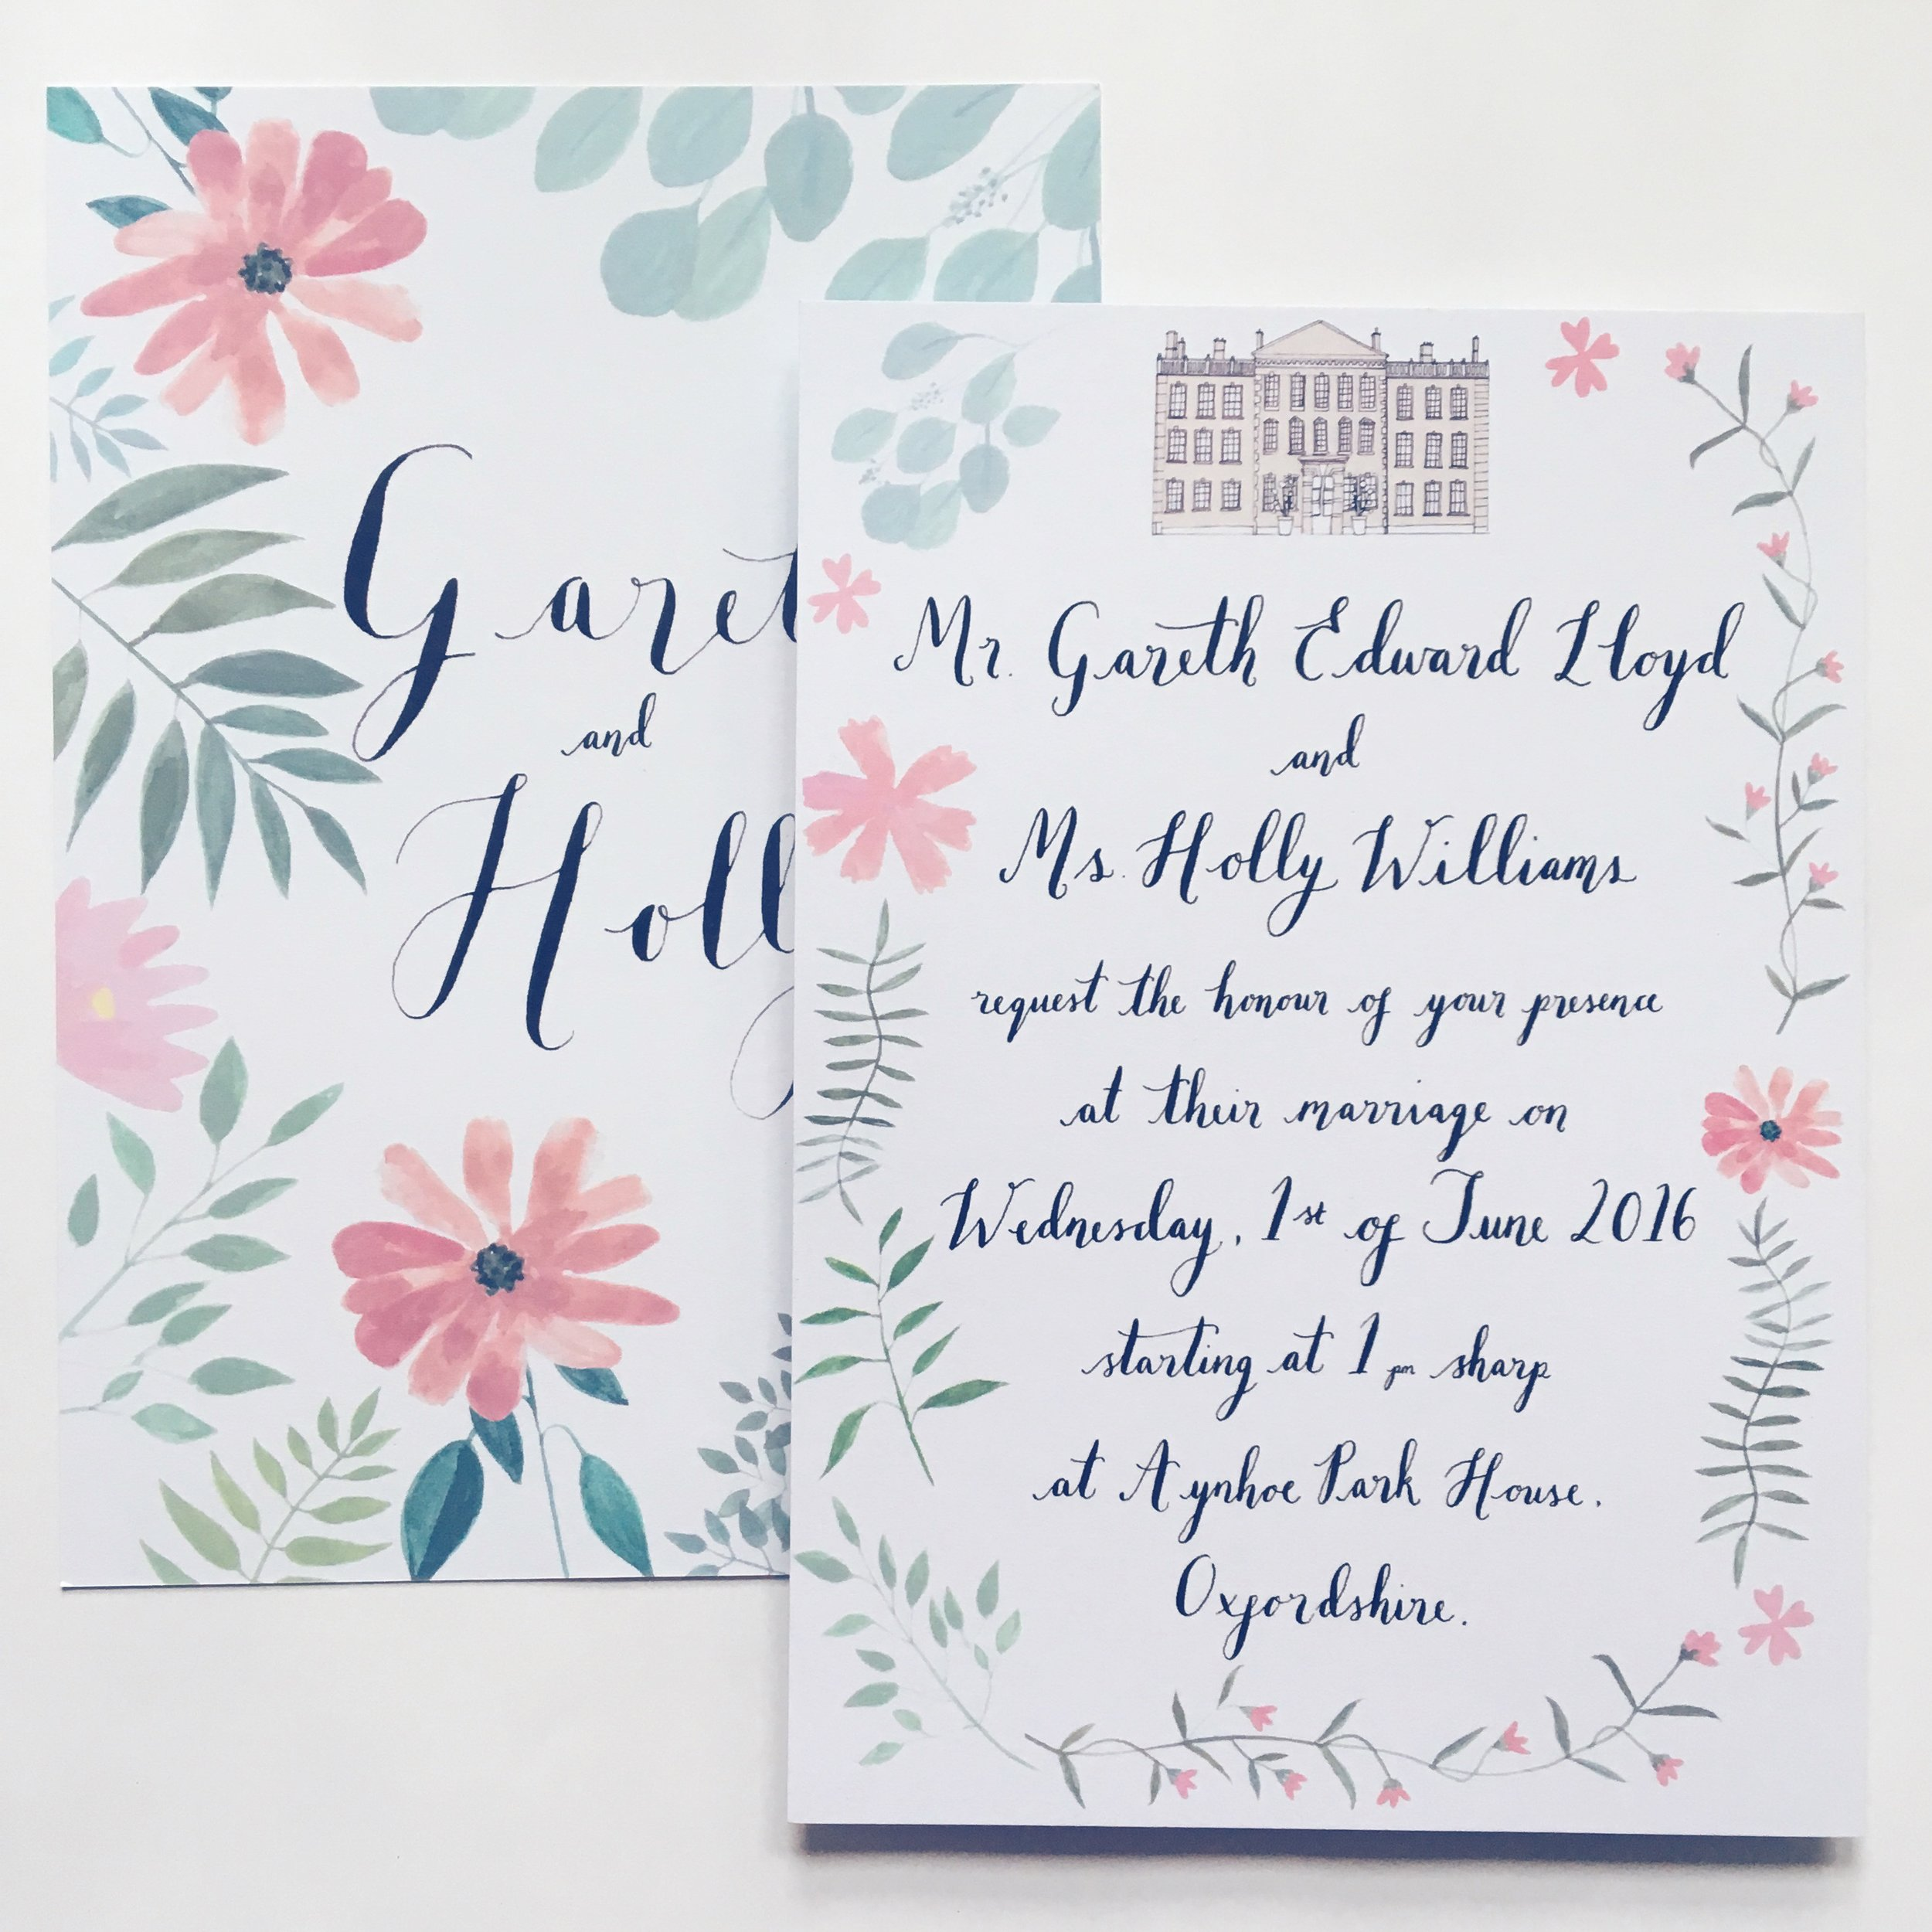 Holly and Gareth - Customised Wildflower